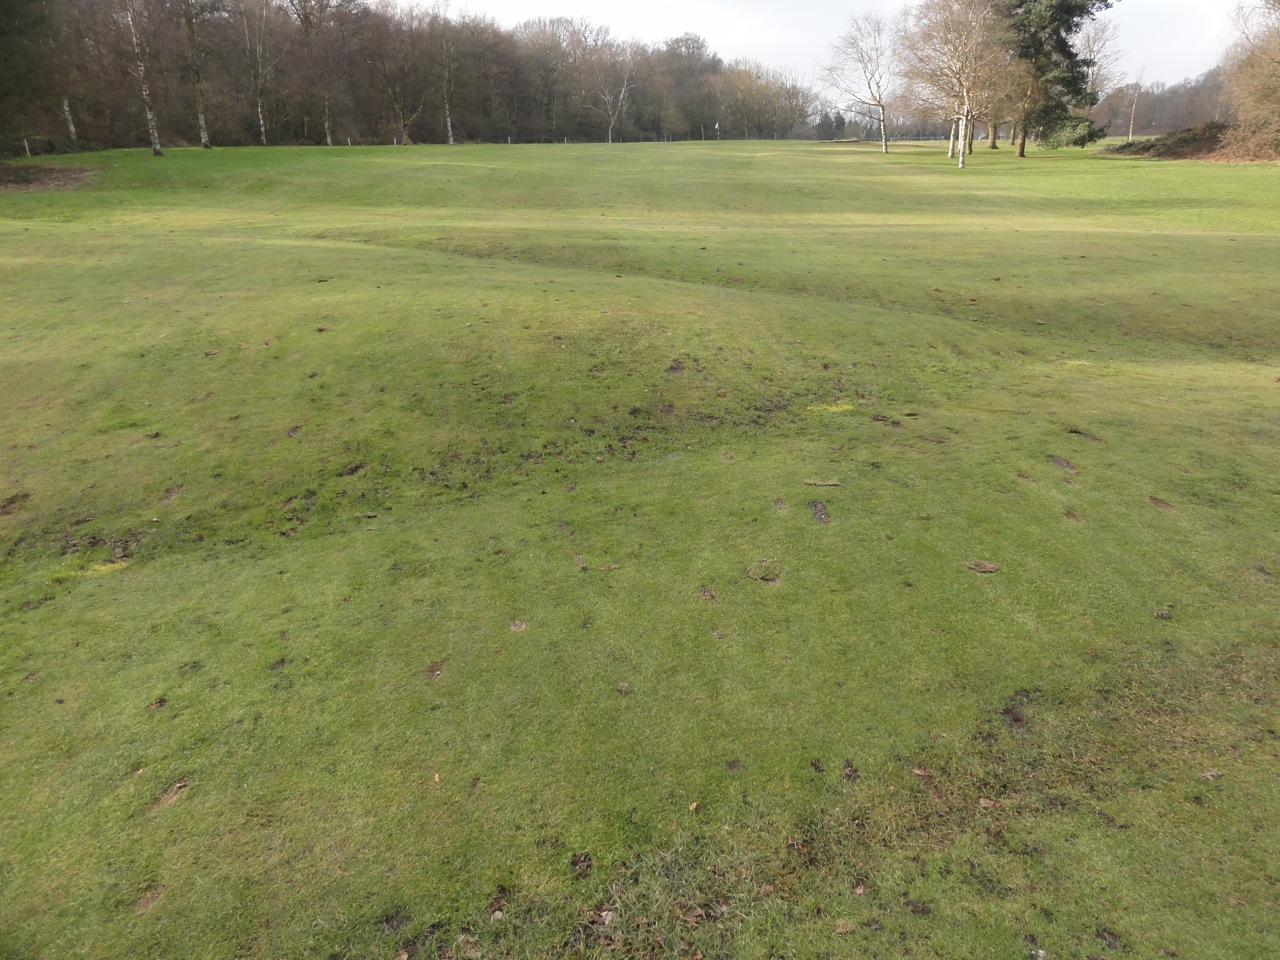 The area in question is riddled with significant undulations, making natural drainage very difficult.